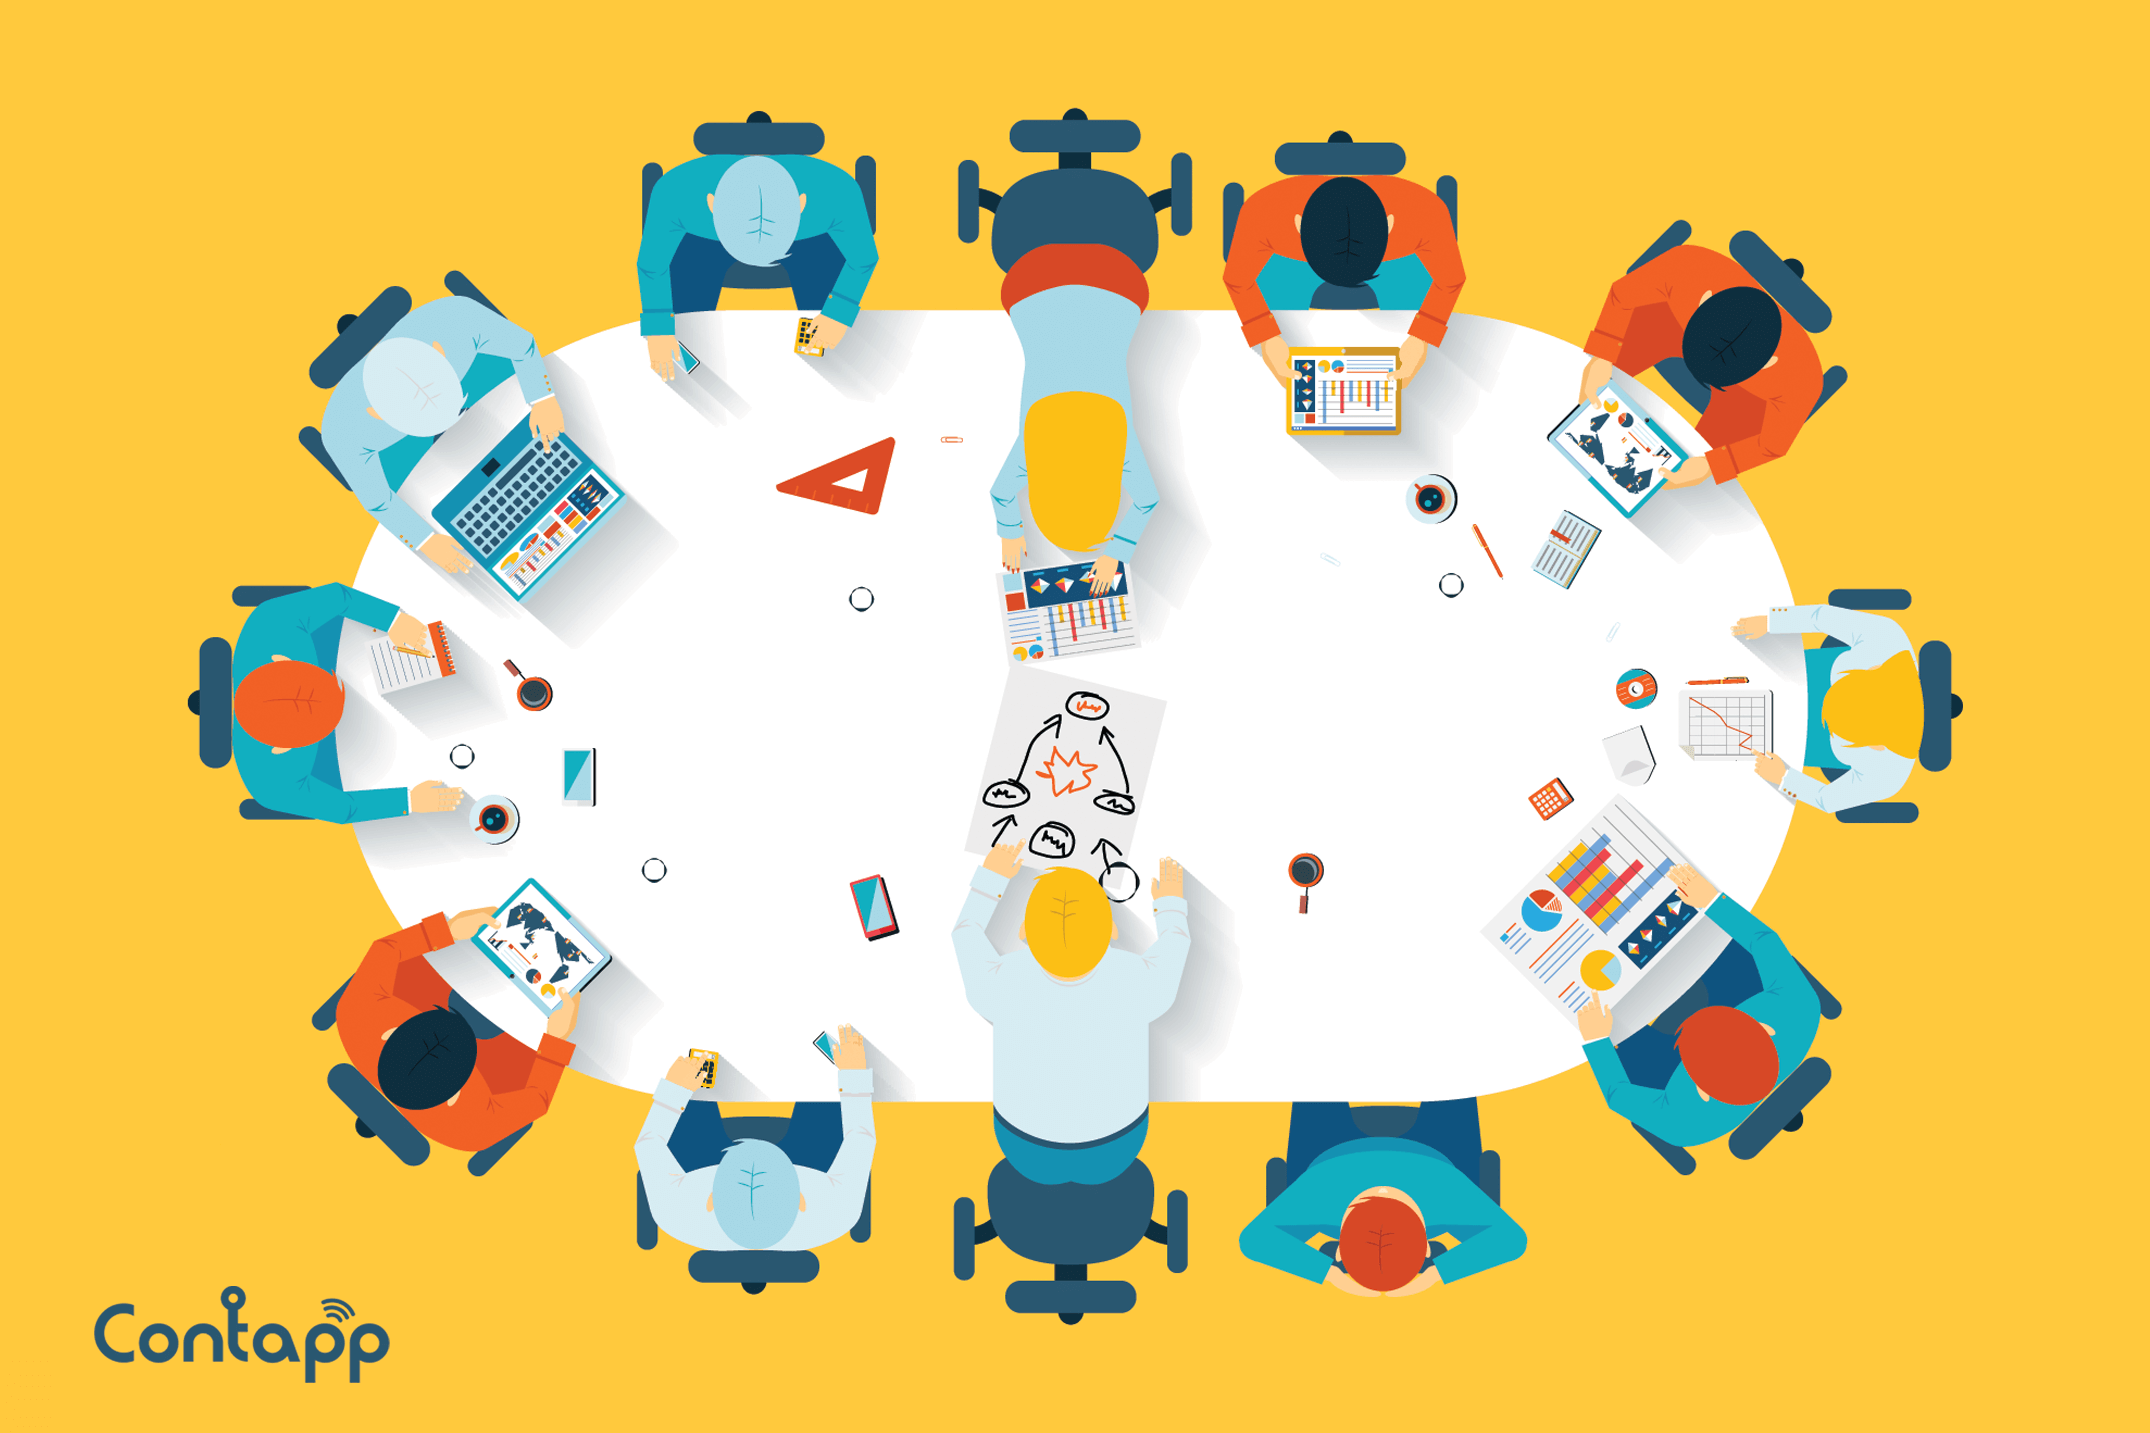 9 Tips on How to Manage Teams More Efficiently